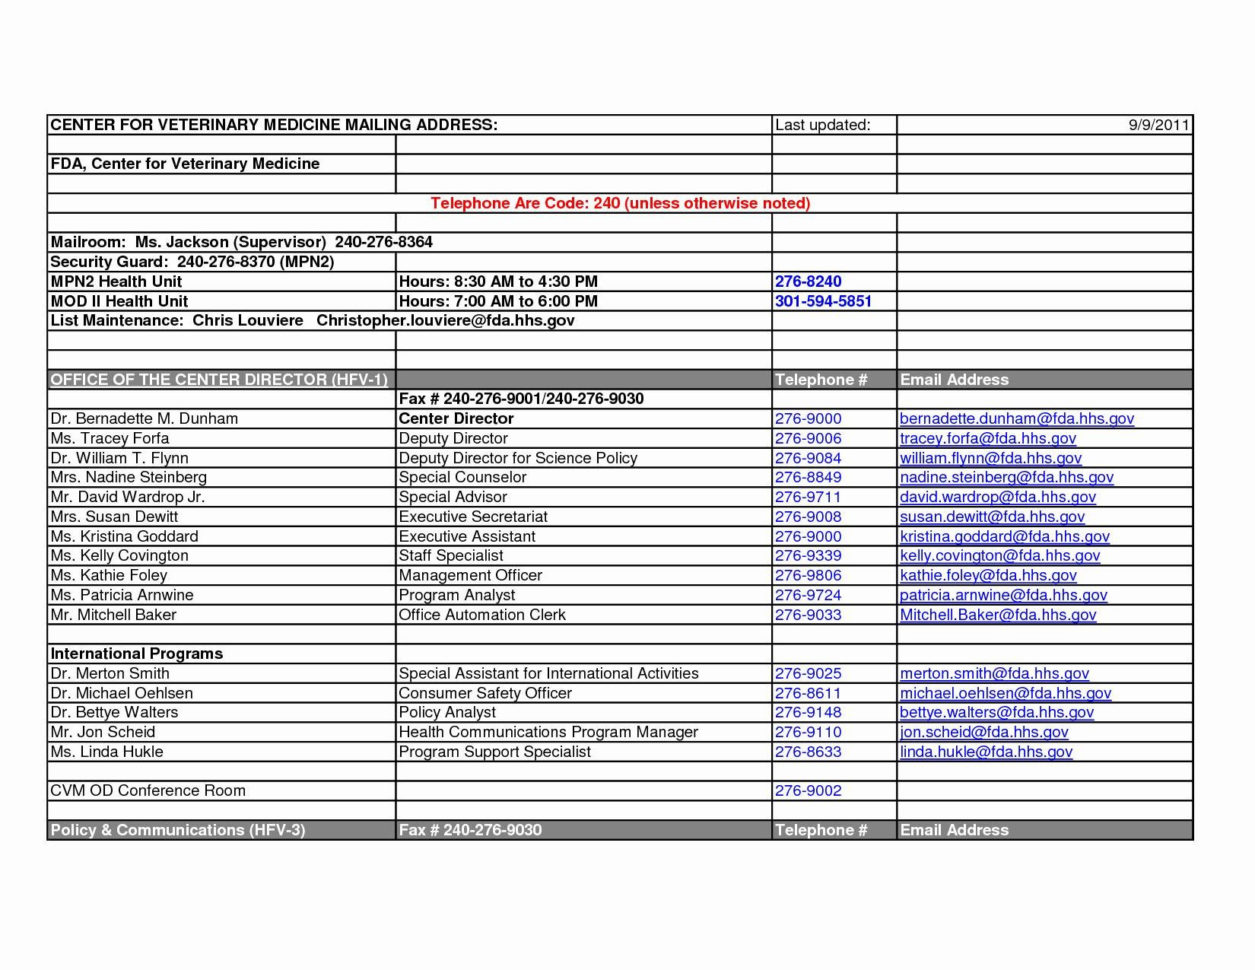 Advanced Excel Spreadsheet Assignments Inside Advanced Excel Spreadsheet Assignments Inspirational Microsoft Excel